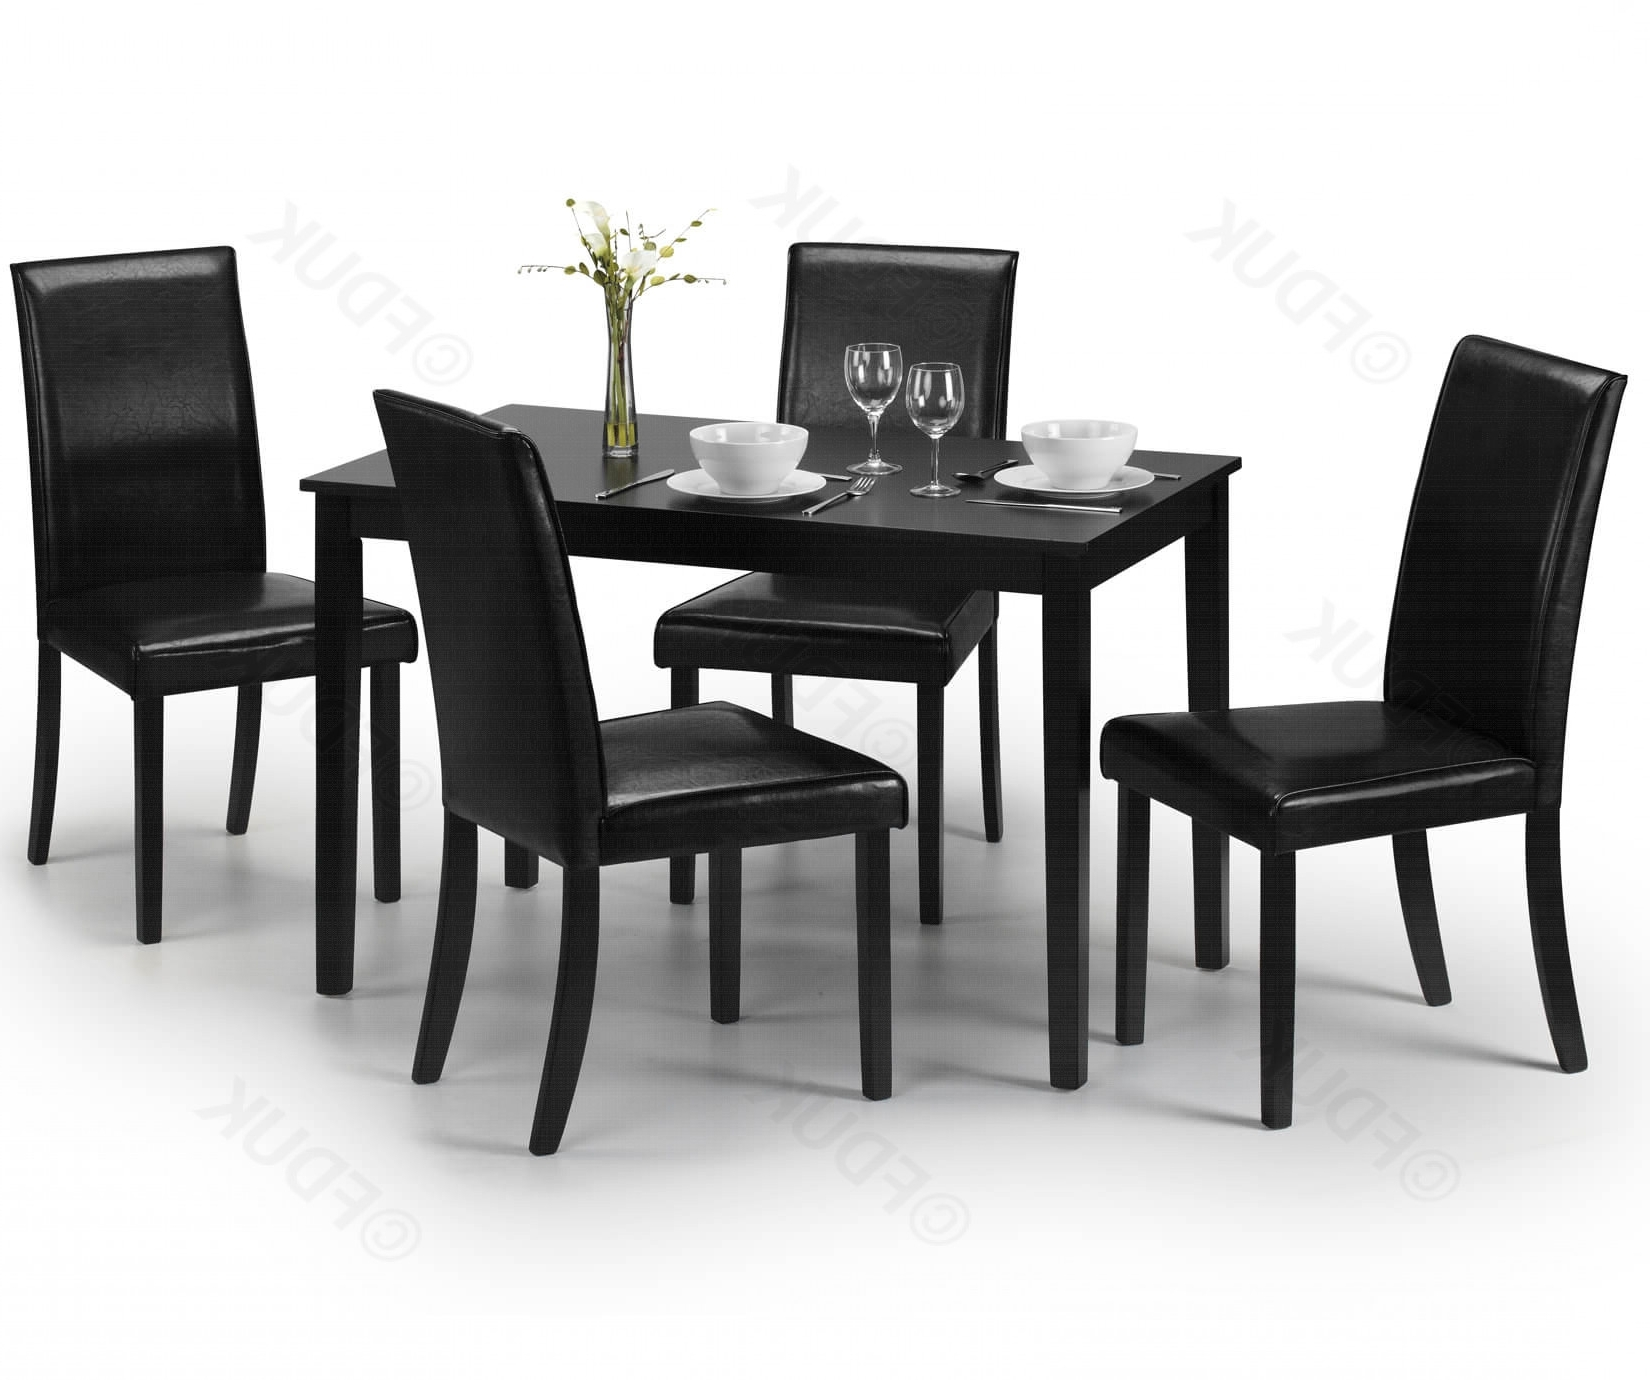 Next Hudson Dining Tables With Fashionable Julian Bowen Hudson (View 11 of 25)